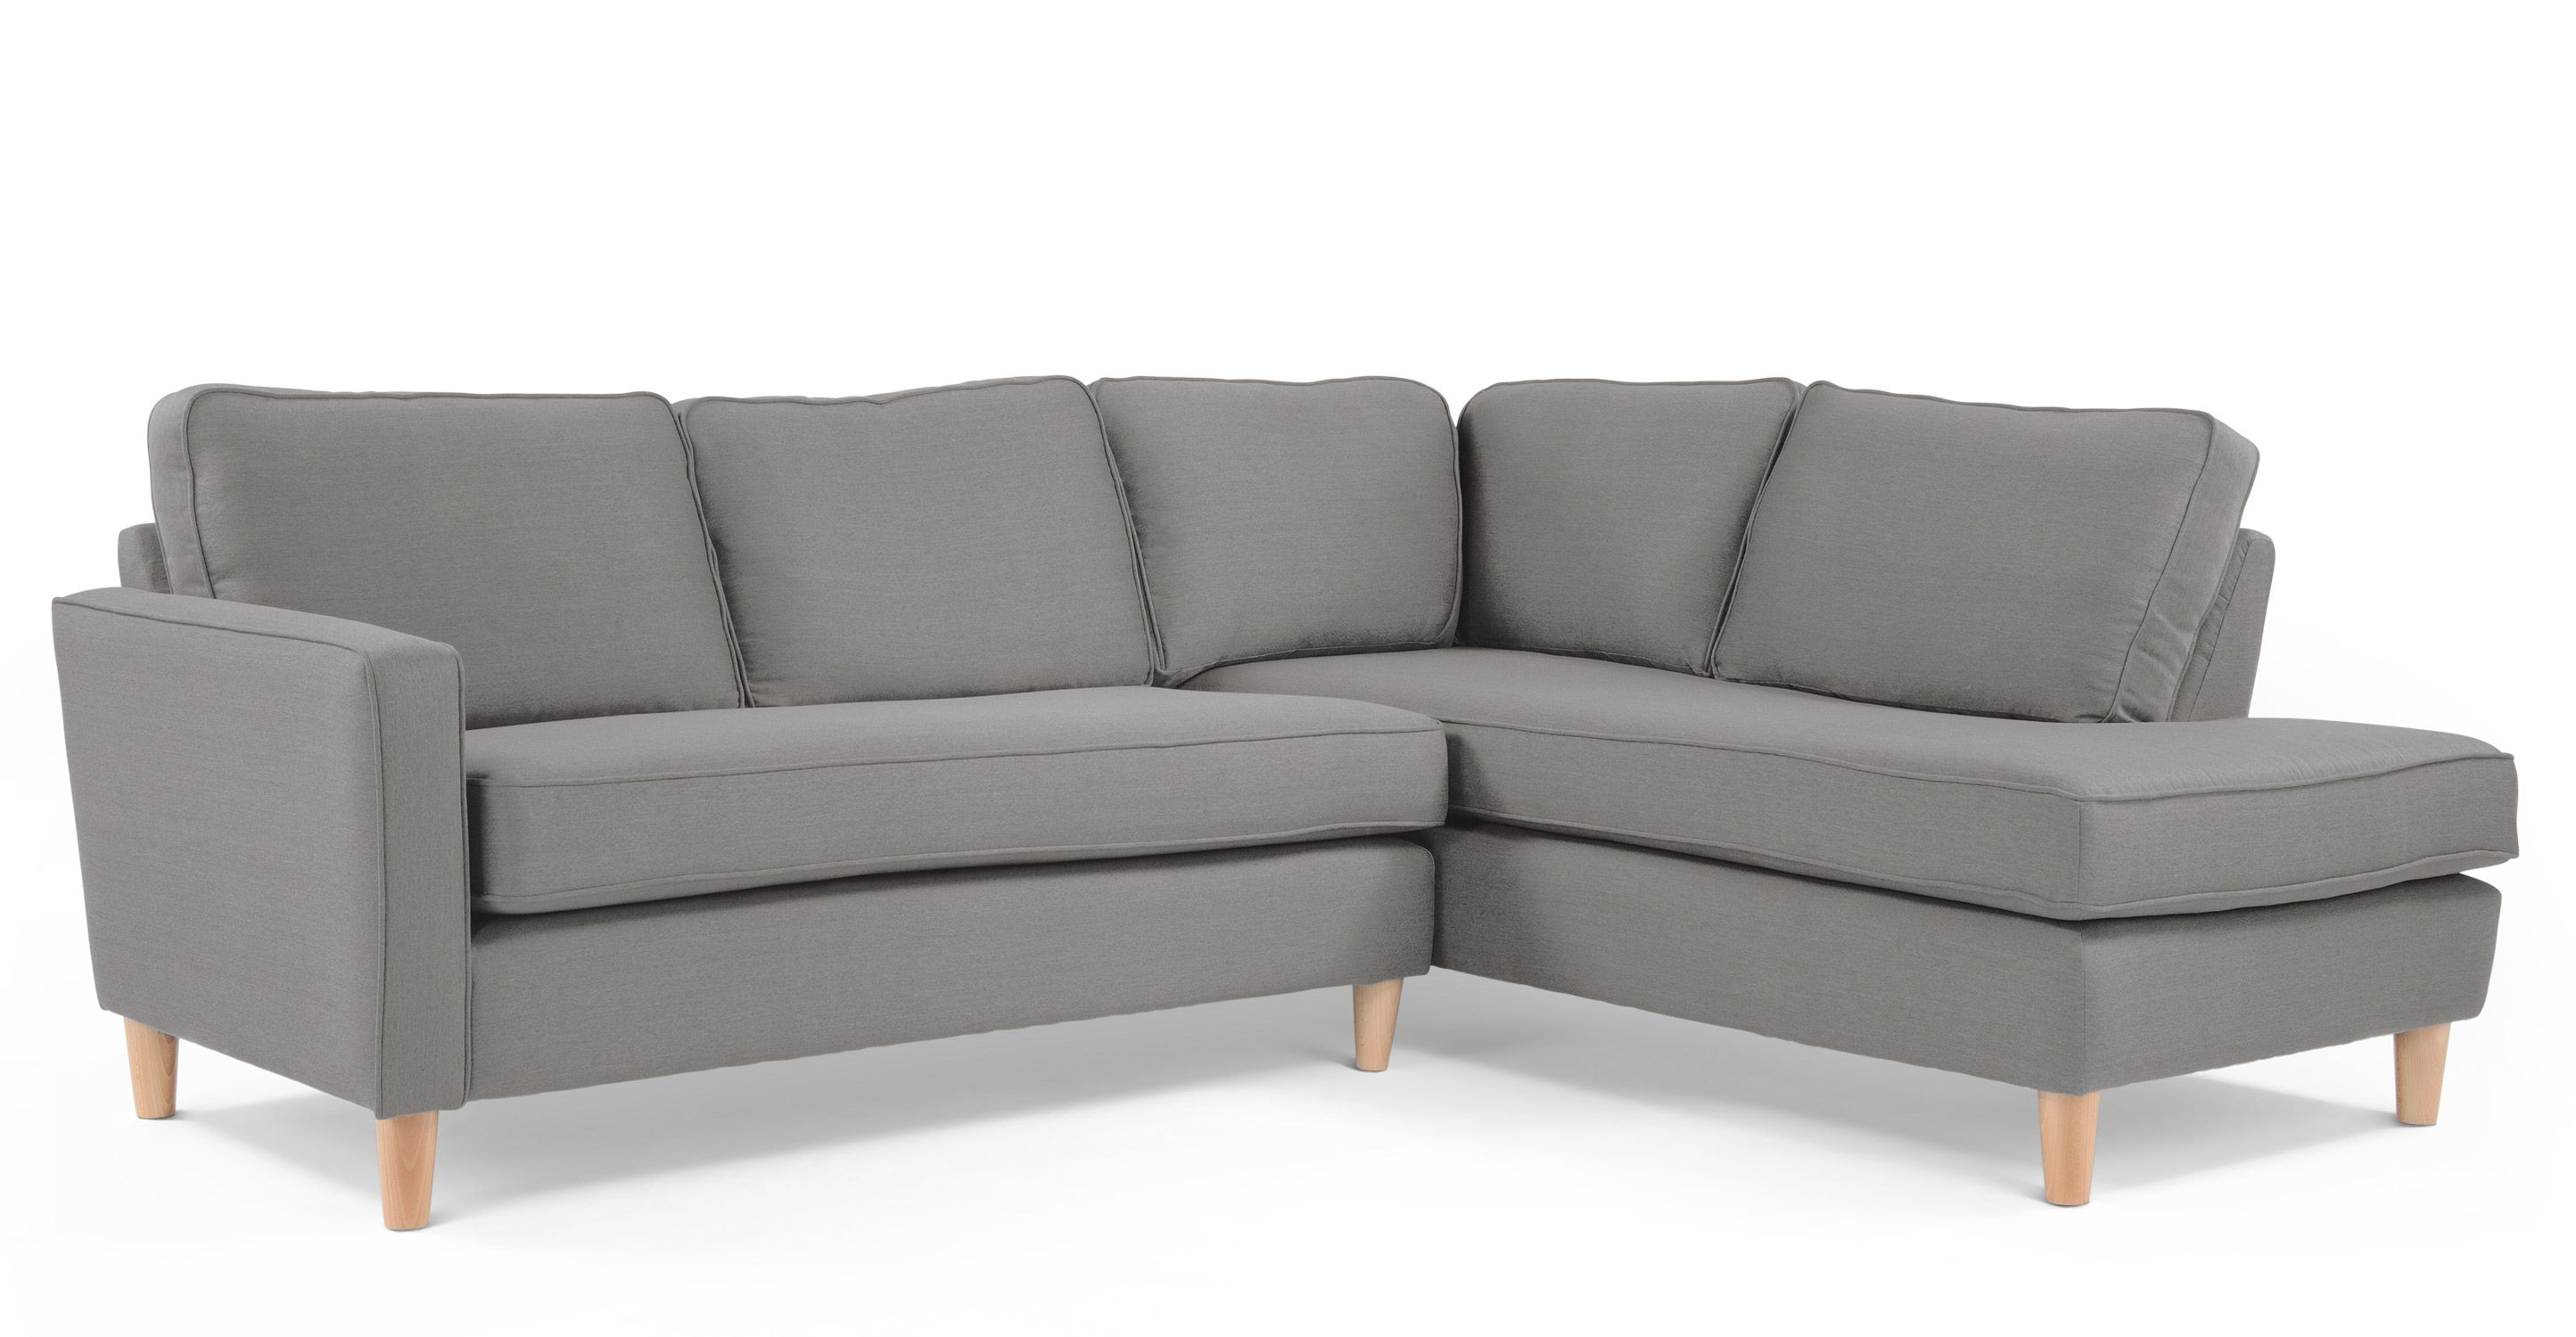 Lugano Right Hand Facing Corner Sofa Group City Grey Corner Sofa Sofa Corner Sofa Bed